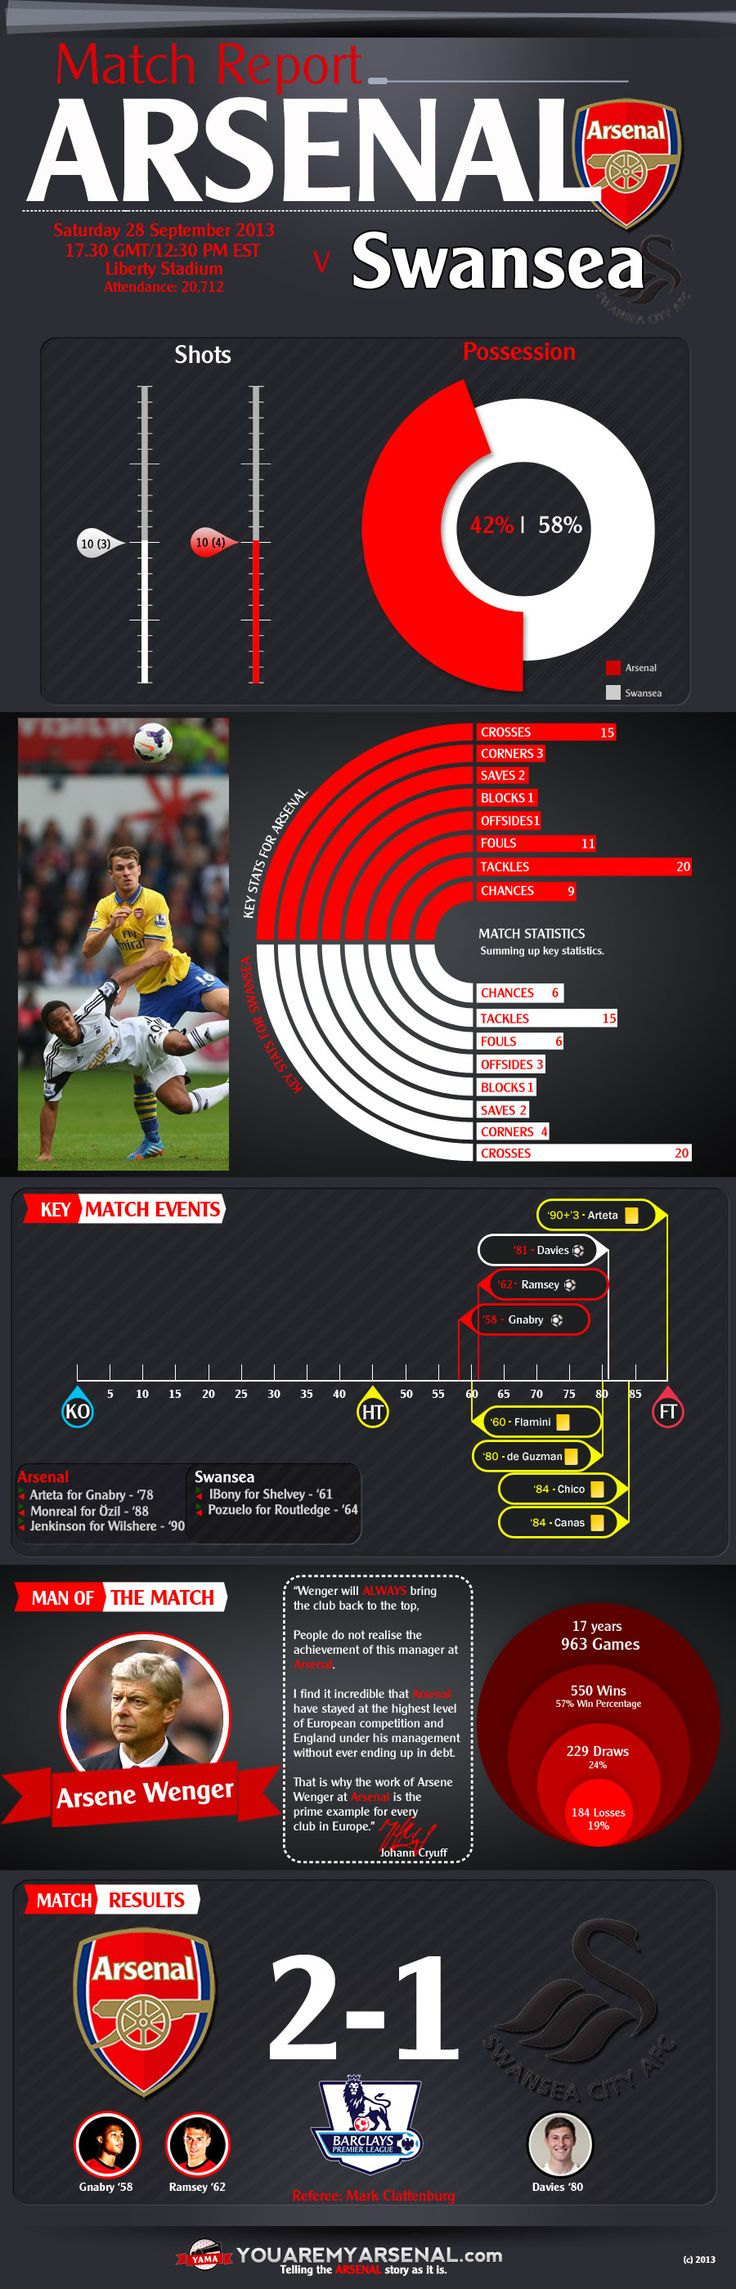 Infographic of key stats from Arsenal v Swansea 28 Sept 2013